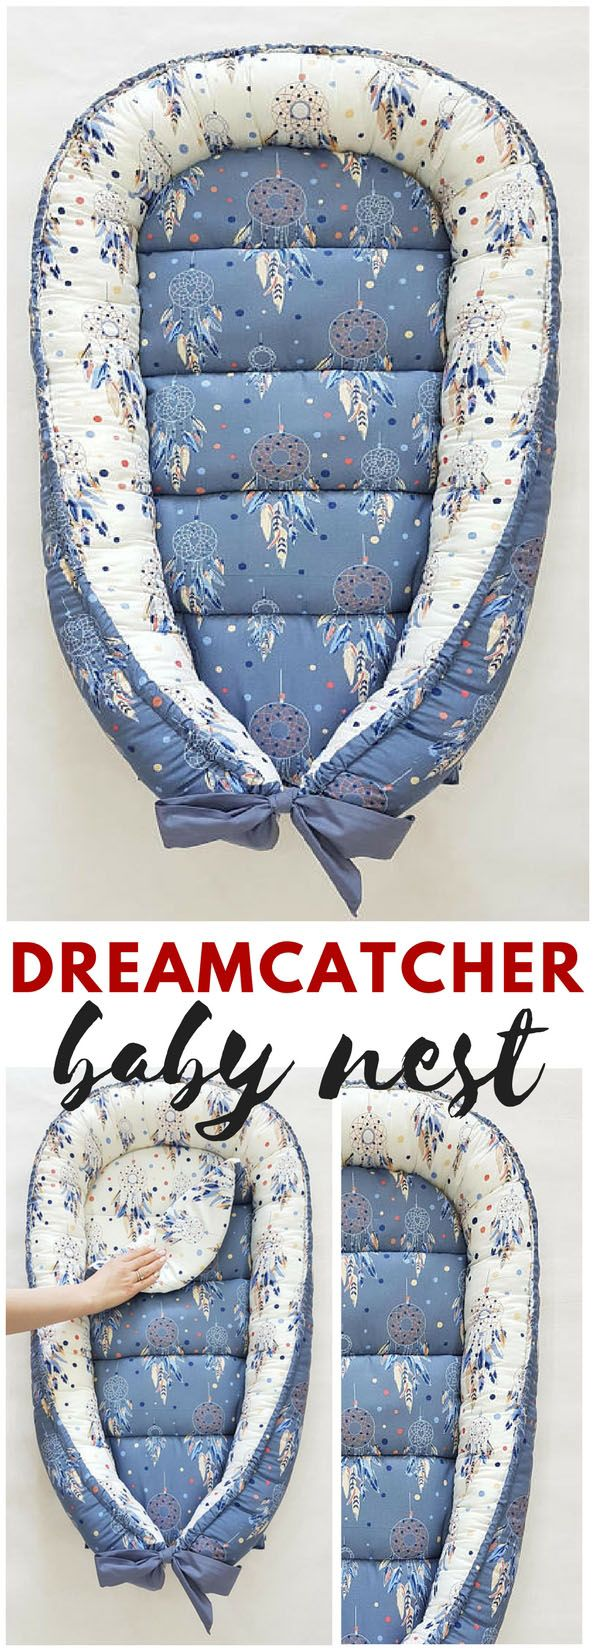 This must be the most precious baby nest I've ever seen. Love the dreamcatcher! Perfect gender neutral baby nest, great for either baby boy or baby girl.#babynest #babyboho #dreamcatcher #bohobabynest #affiliate #babylounger #newborngift